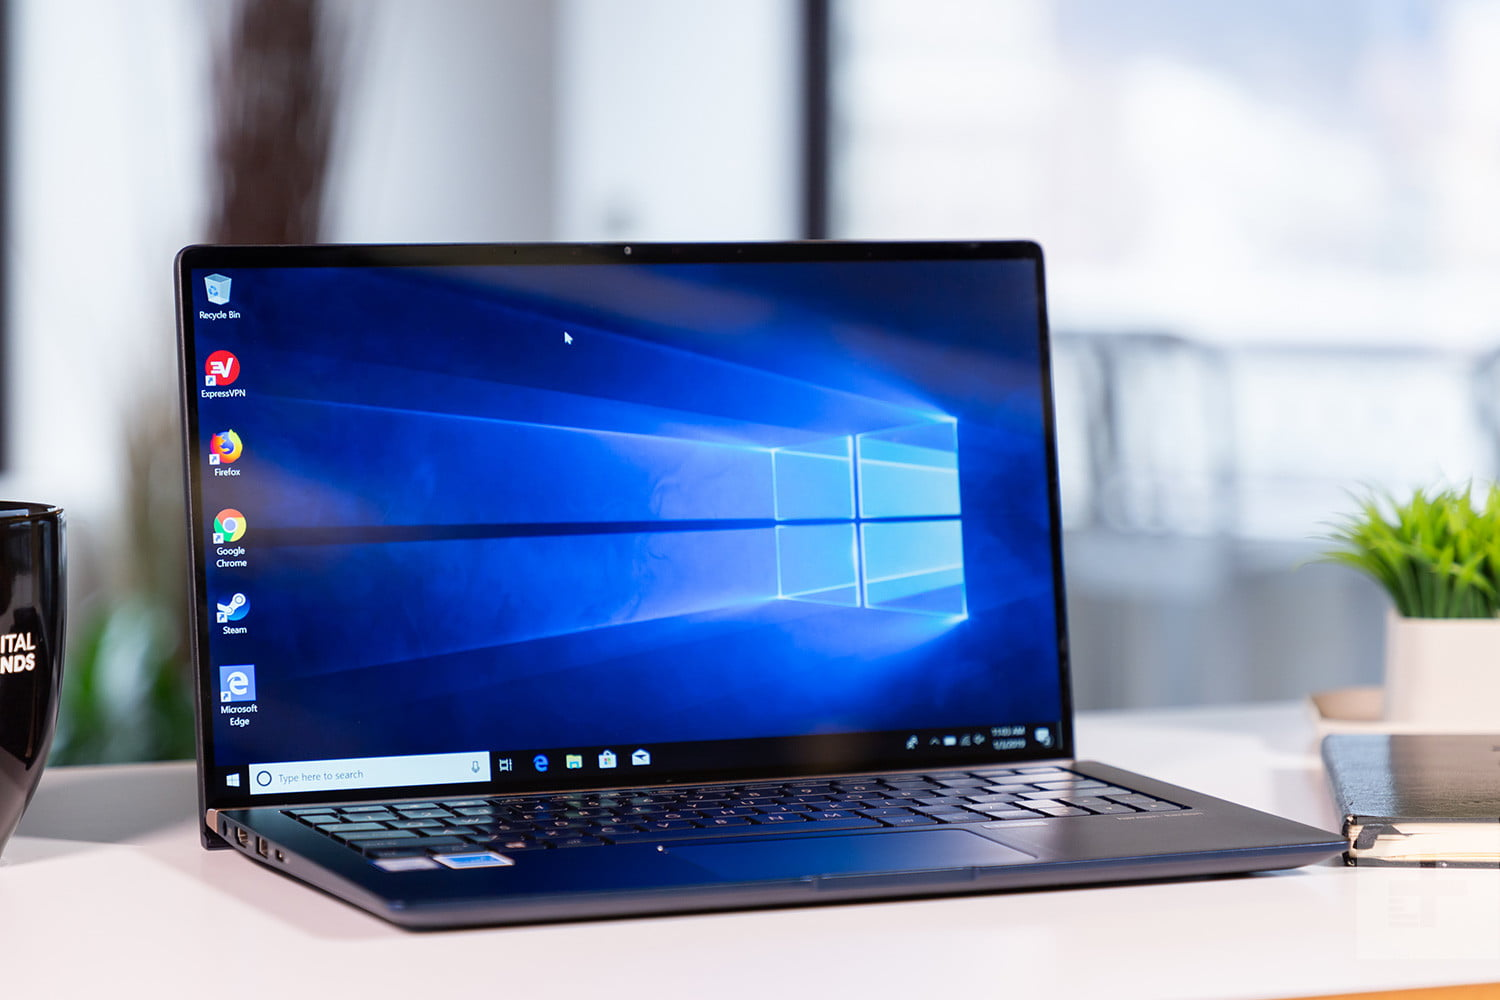 Best Laptop for School And Photography